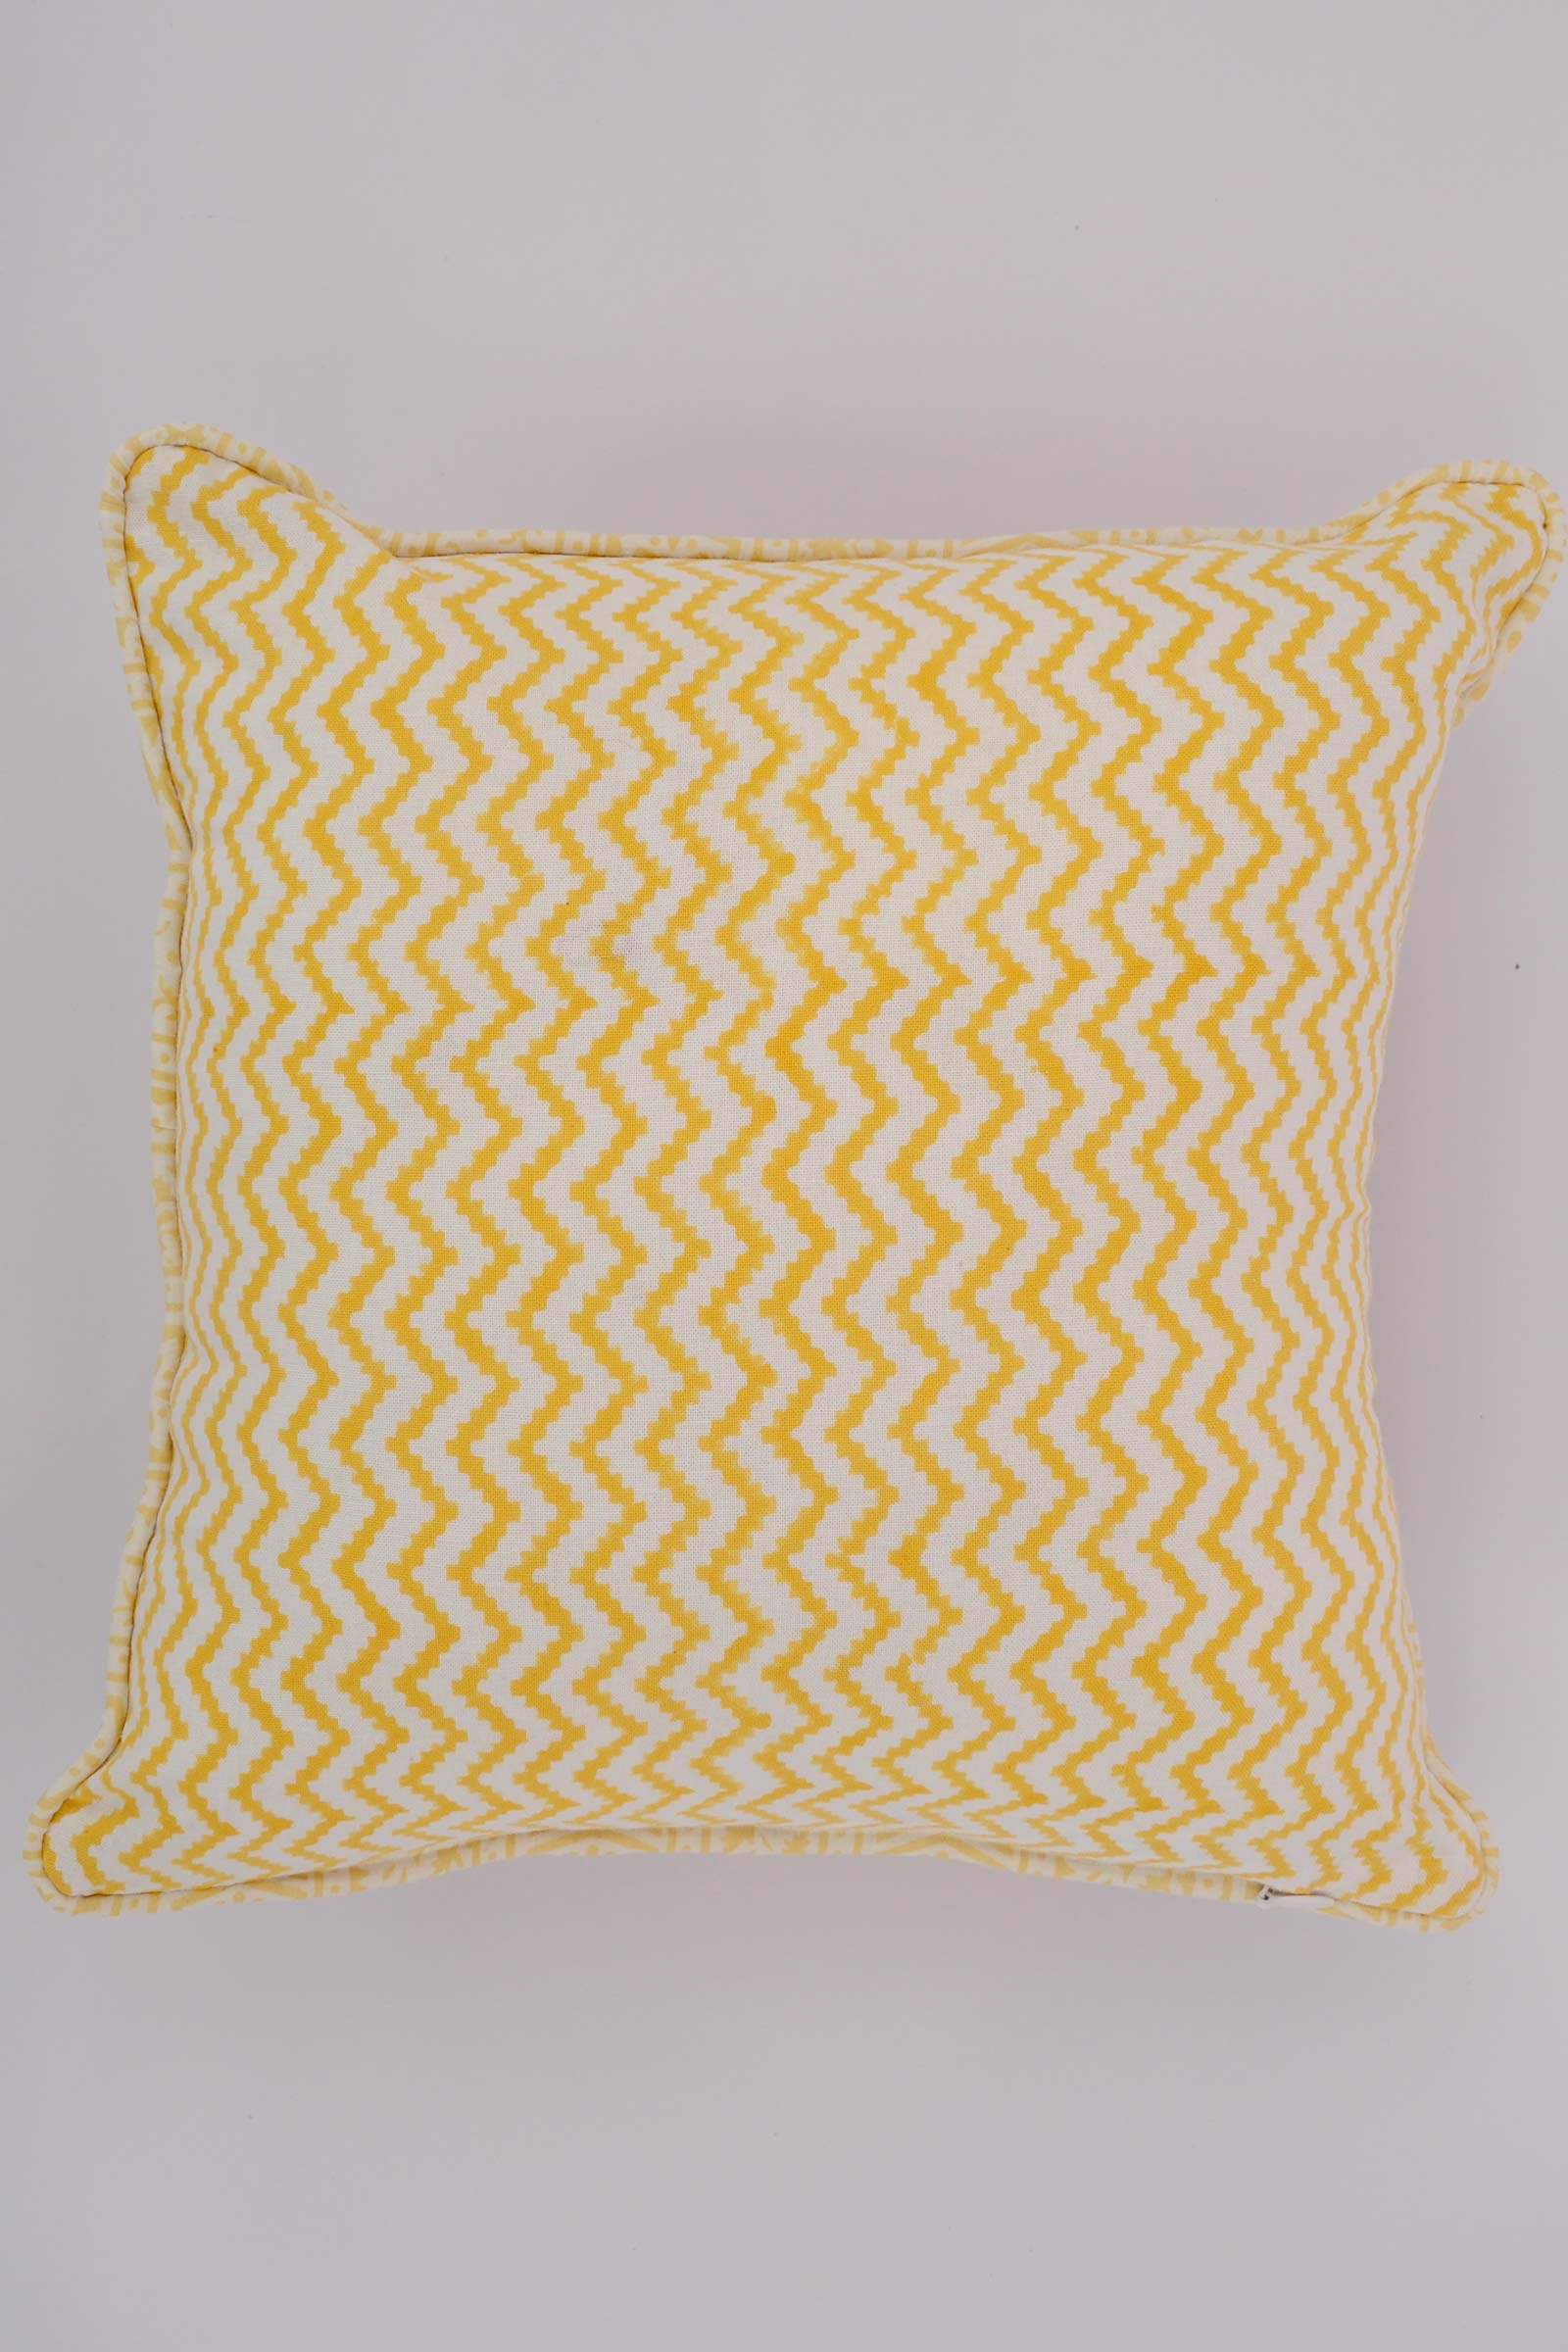 Cloudy Morning Border Cushion Cover